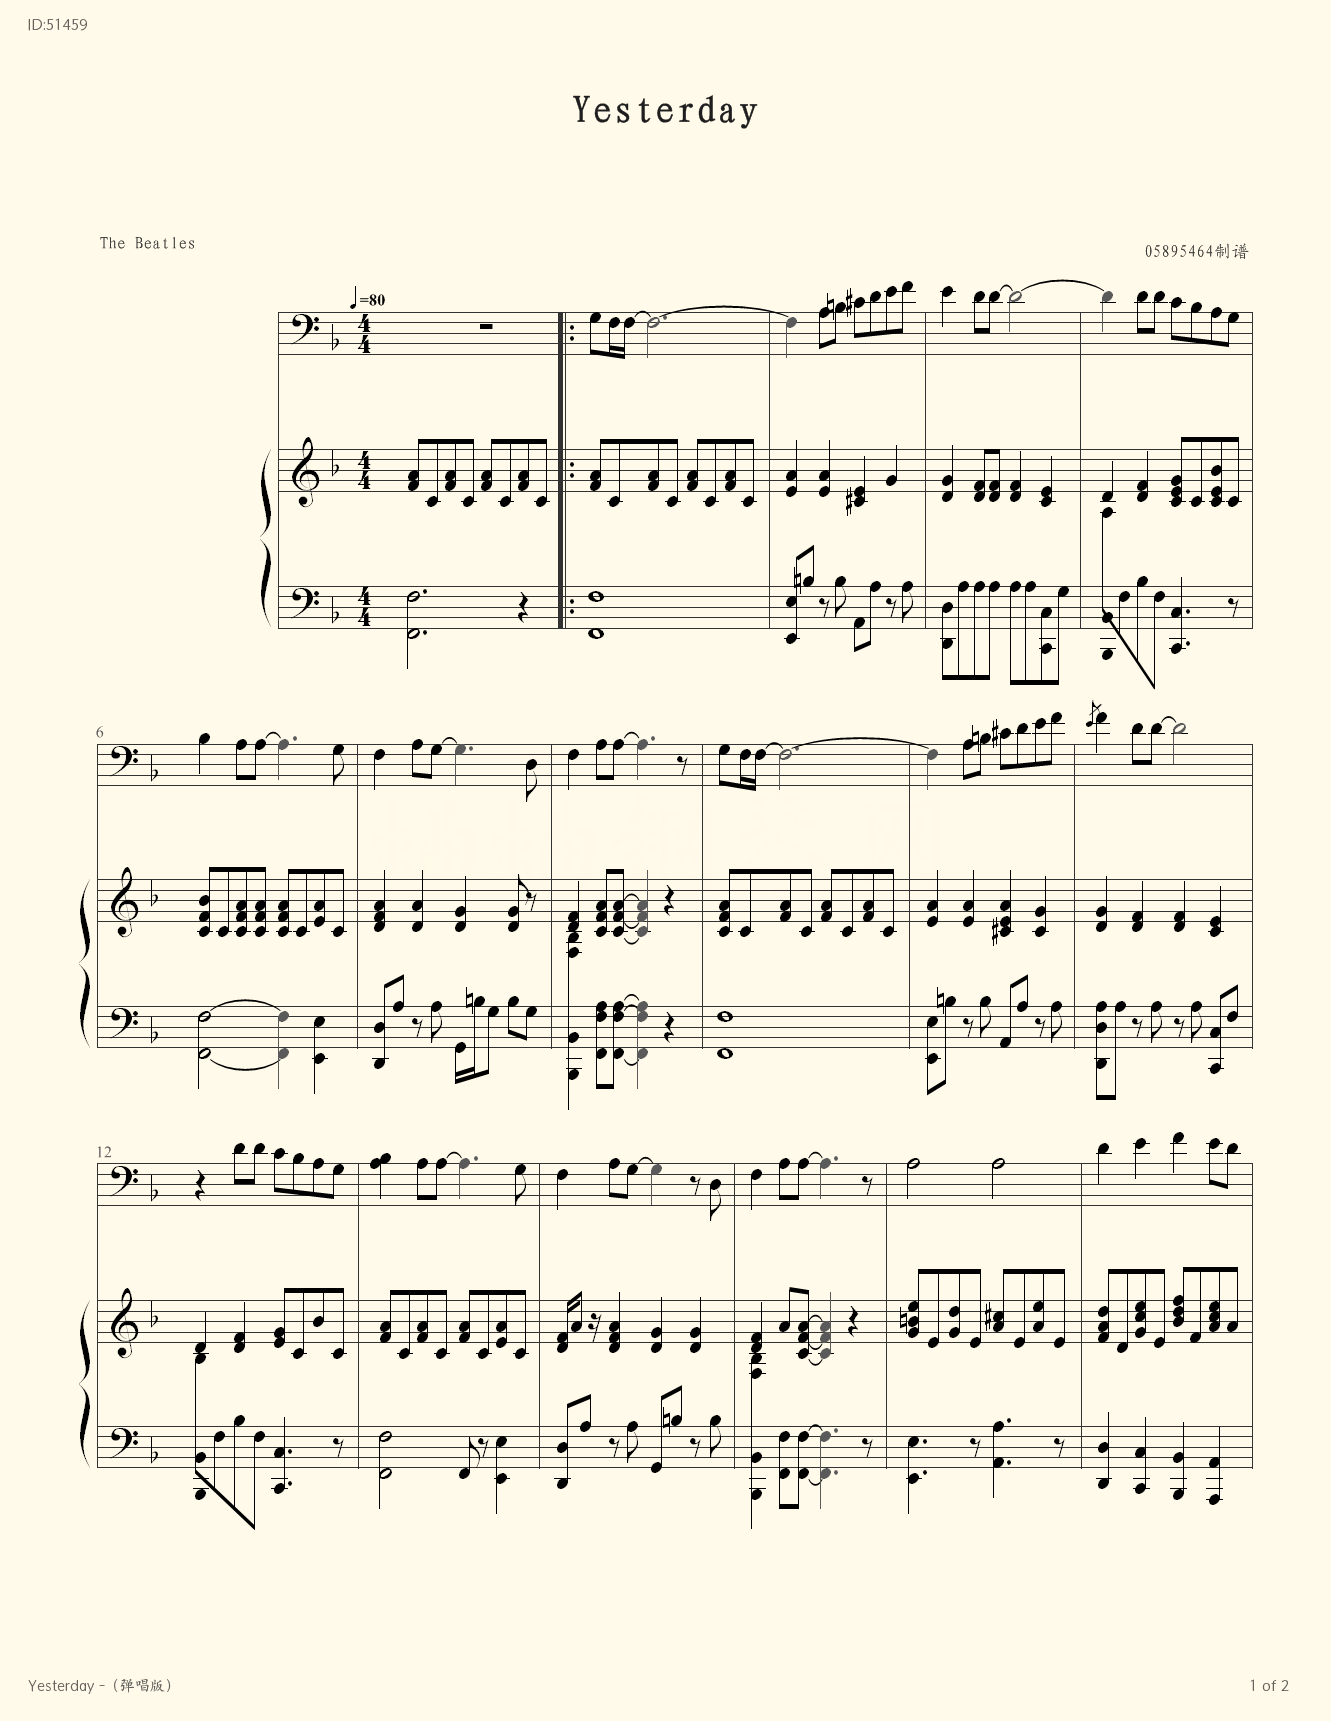 Yesterday  - Beattles - first page